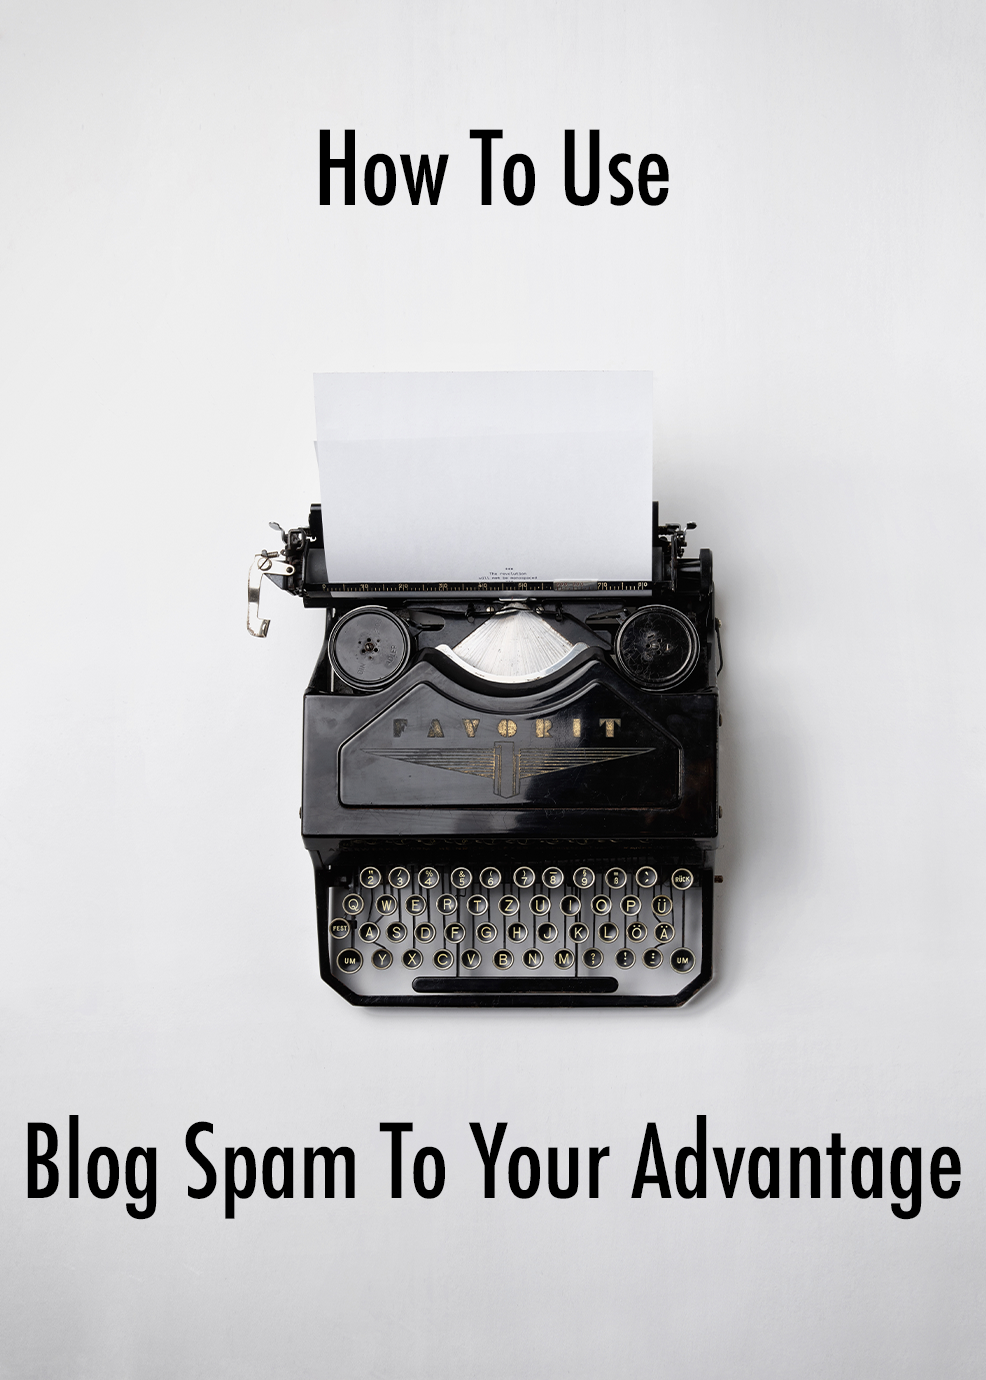 How To Use Blog Spam To Your Advantage